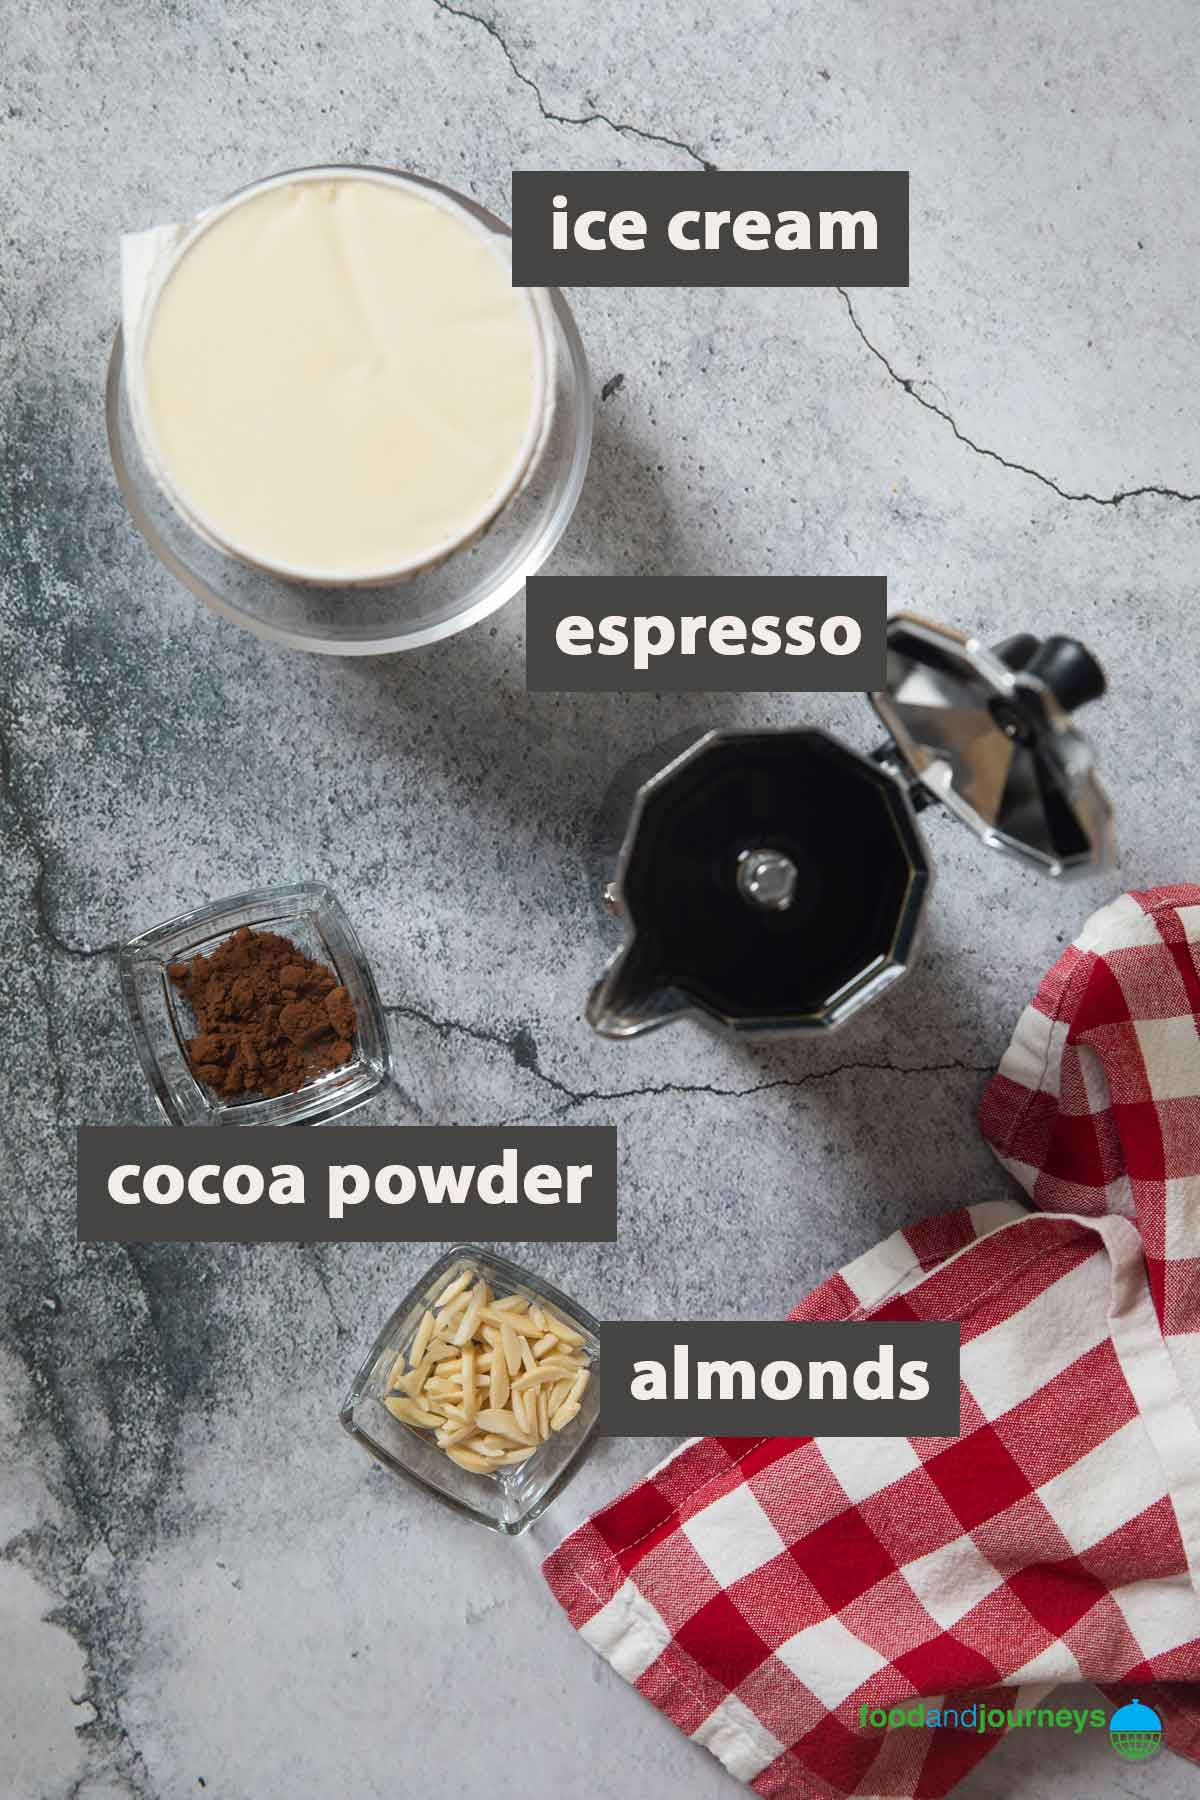 An image showing all the ingredients you need for preparing affogato at home.